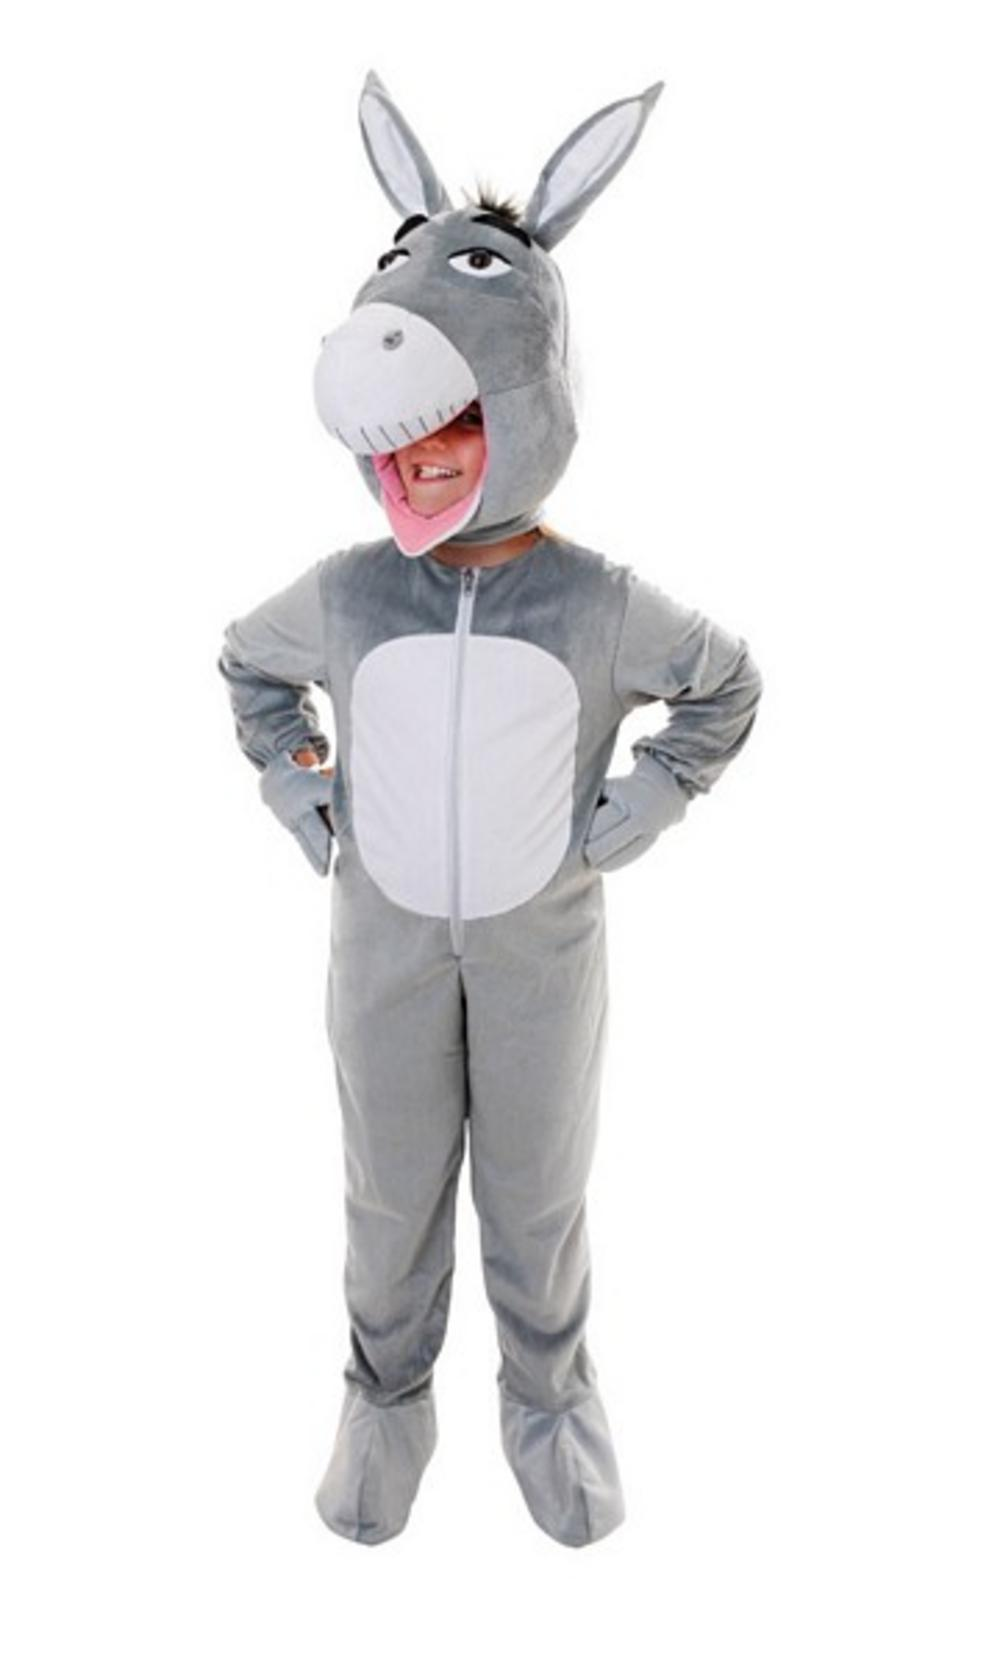 Donkey costume - photo#3